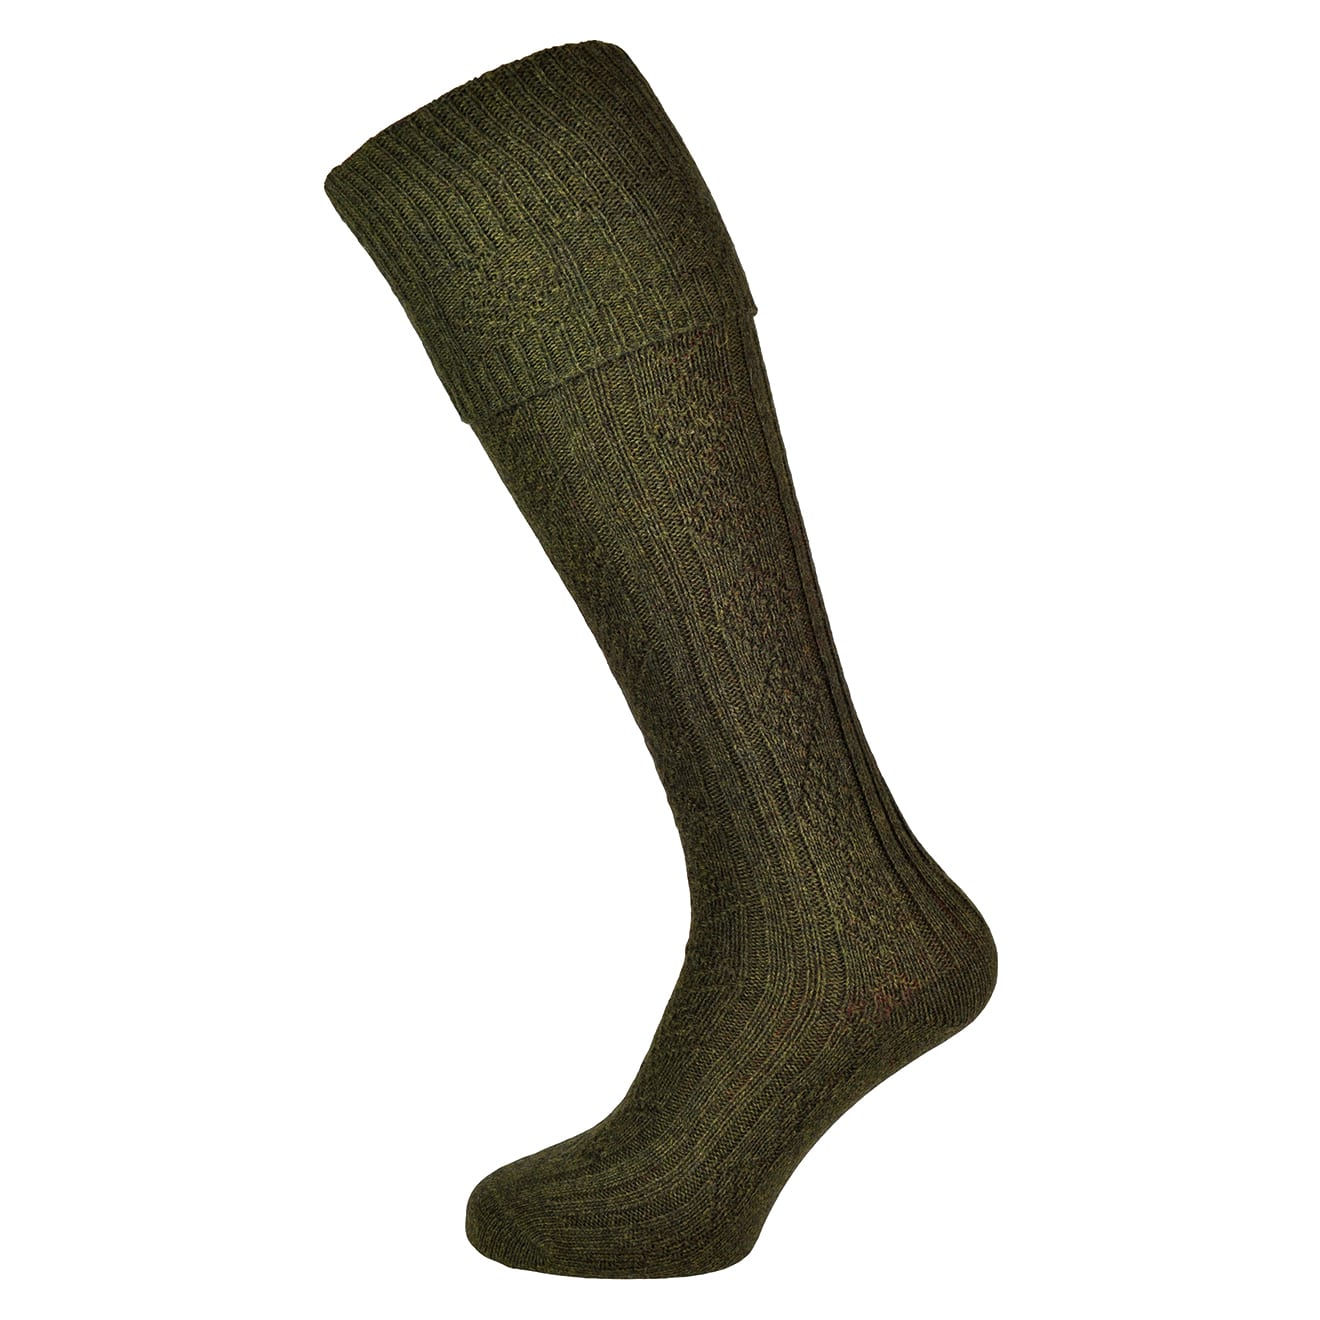 Barbour Tweed gun sock derby tweed